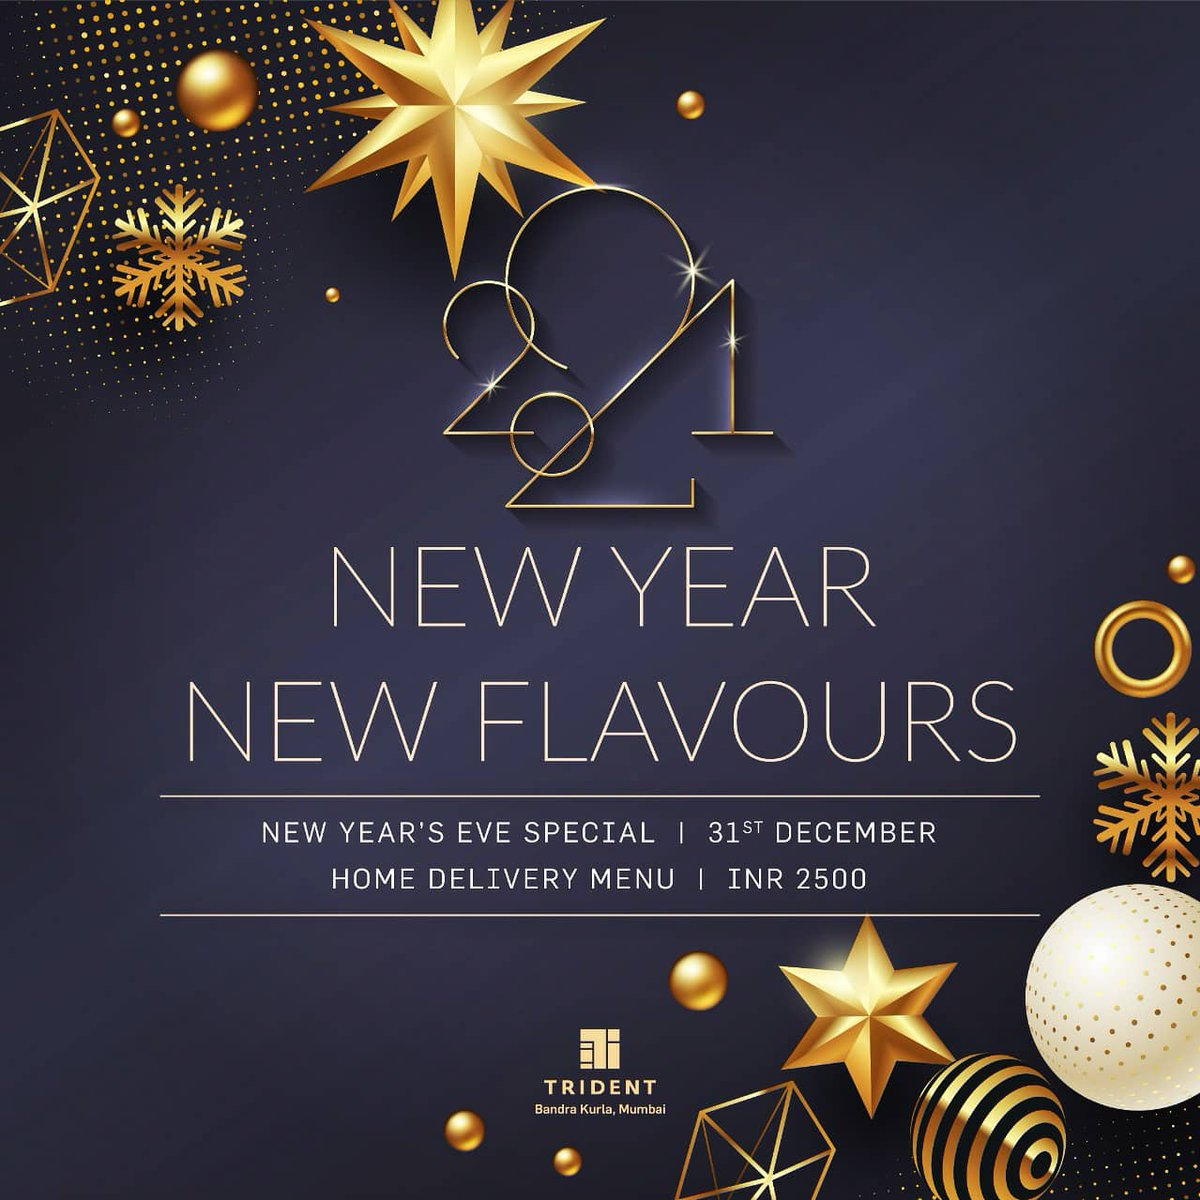 You plan the party, let us plan the food. Delight your senses as @TridentBKC serves up an exceptional #NewYearsEve spread to enjoy at home this 31stDecember.  Available exclusively on 31 Dec. View  menu 👉:https://t.co/Ubue04bSoM For home delivery 📞 +9122 6672 7626 #NewYear https://t.co/WADKChHVSs